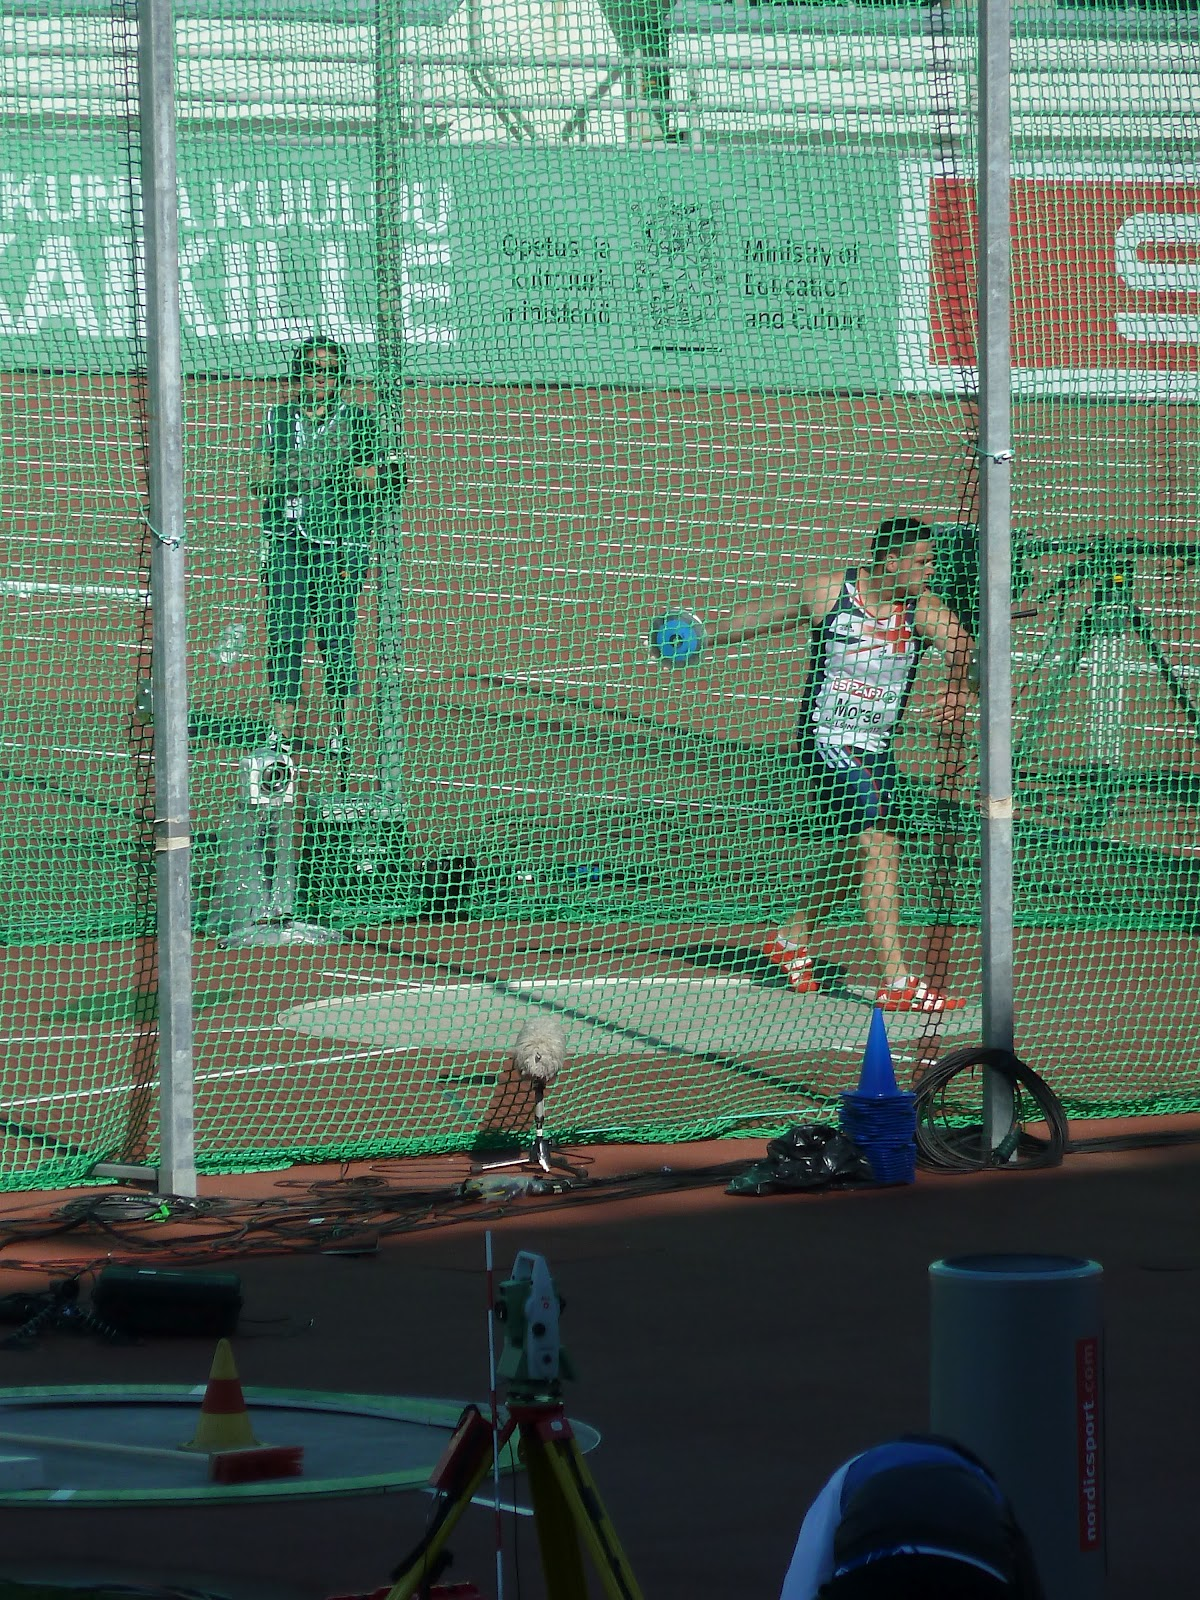 pension lawyer meets world day three european championships and